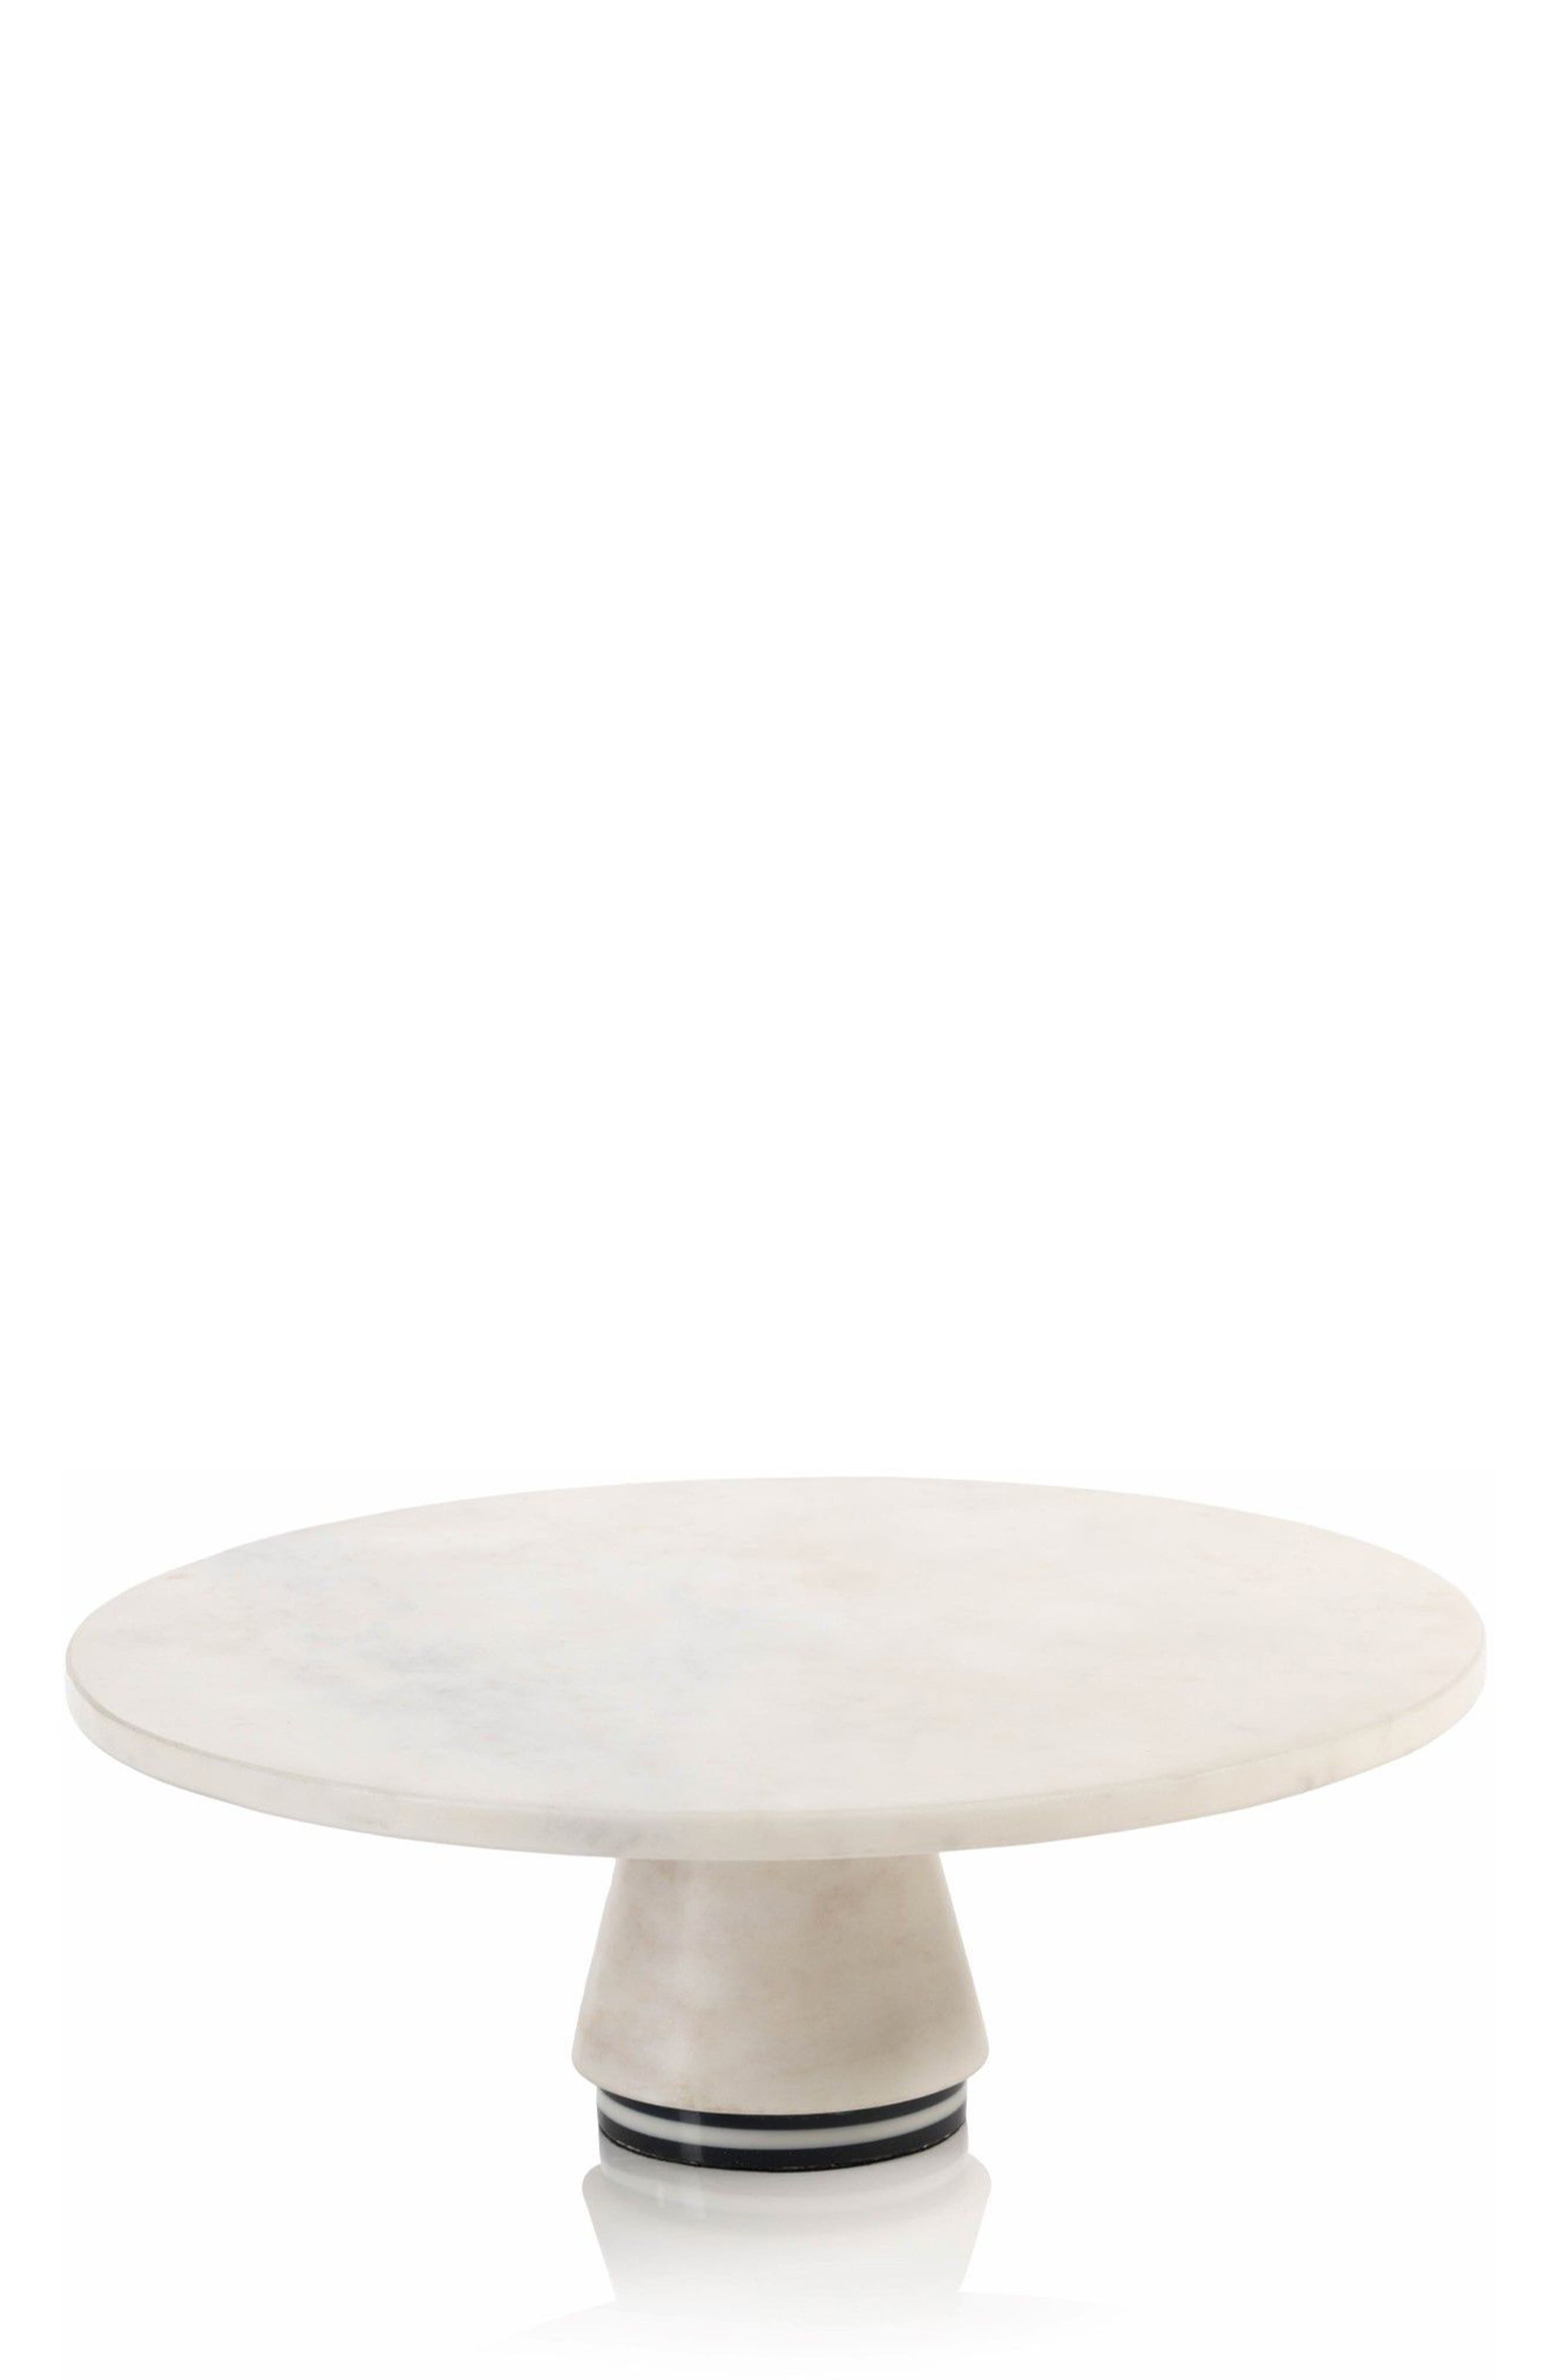 Marine Marble Cake Stand,                             Main thumbnail 1, color,                             White/ Black